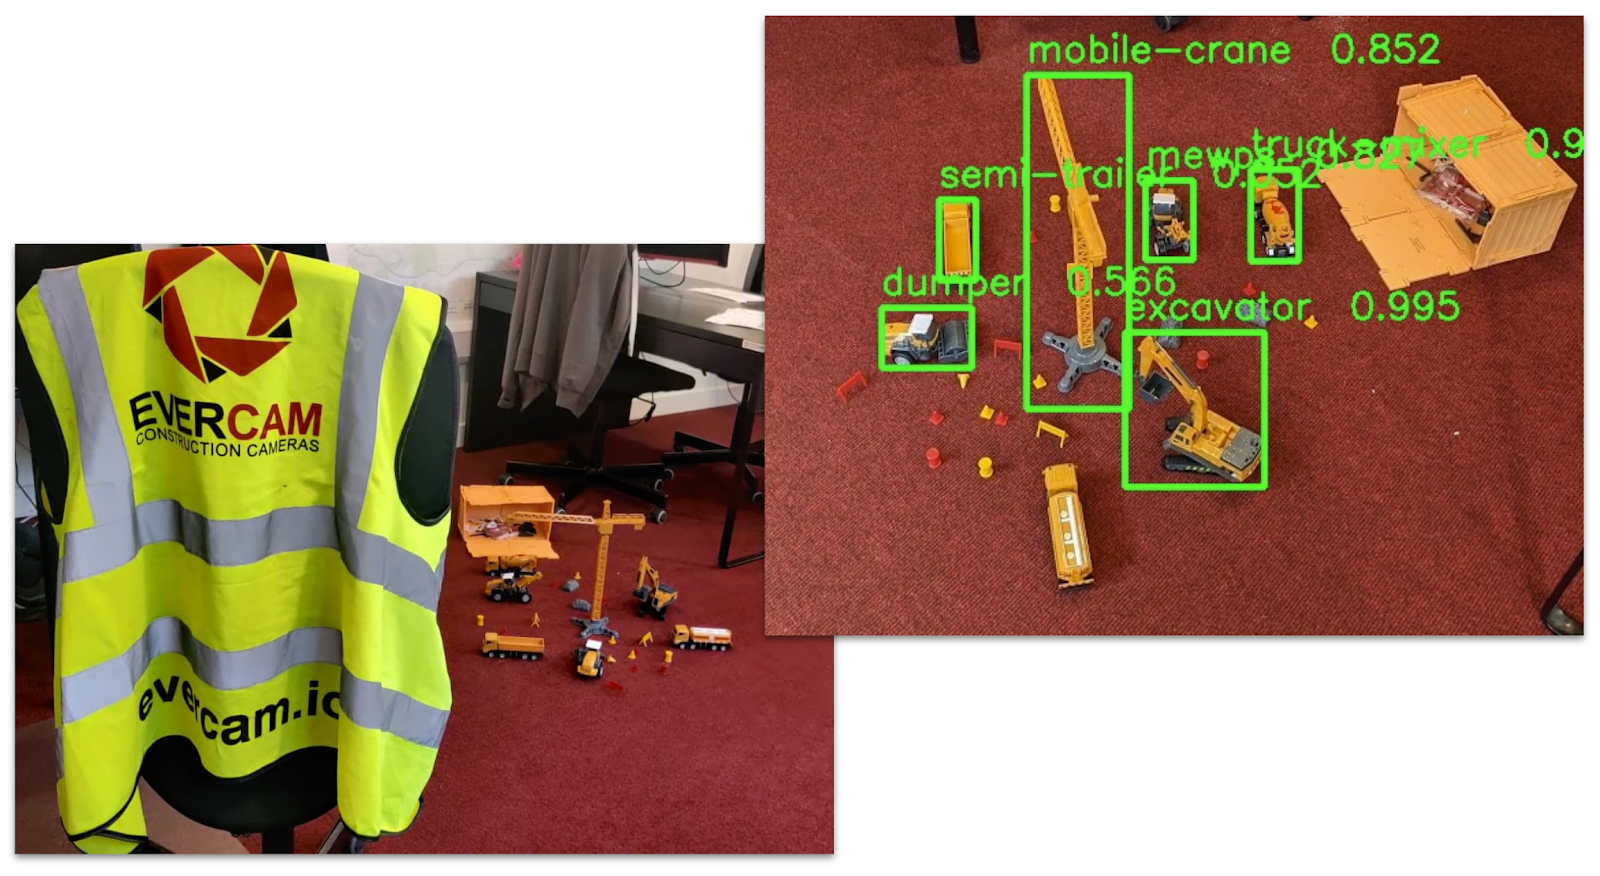 Object detection by Evercam construction camera software